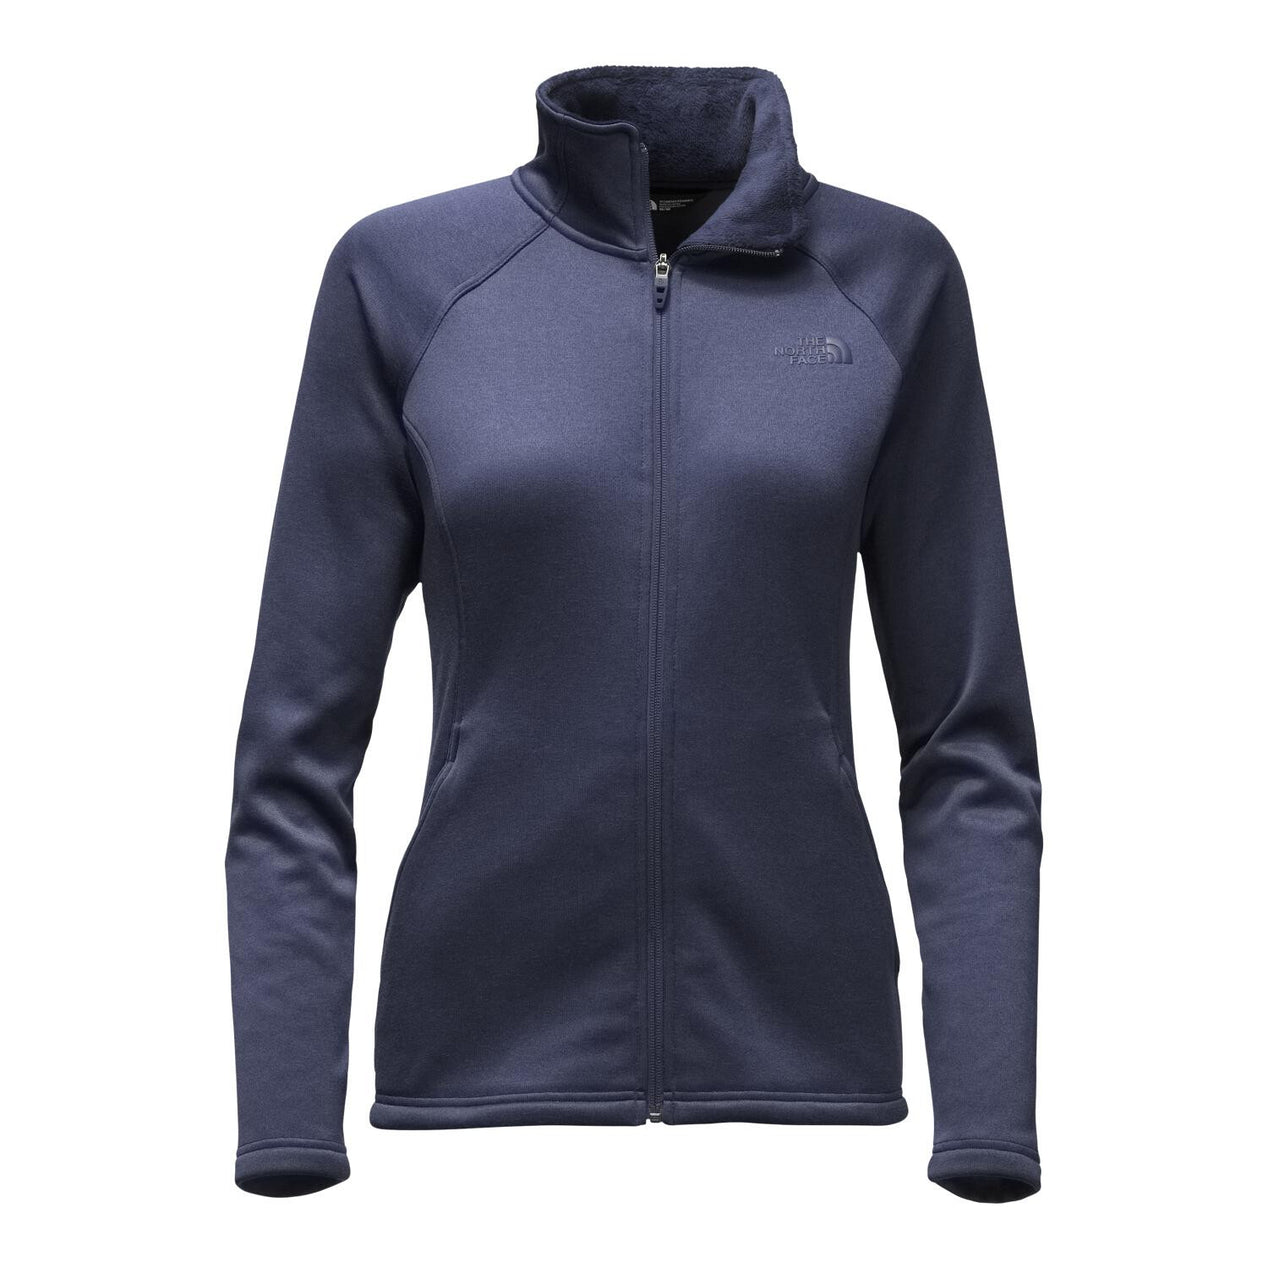 6863bf00c The North Face Women's Agave Full Zip Past Season